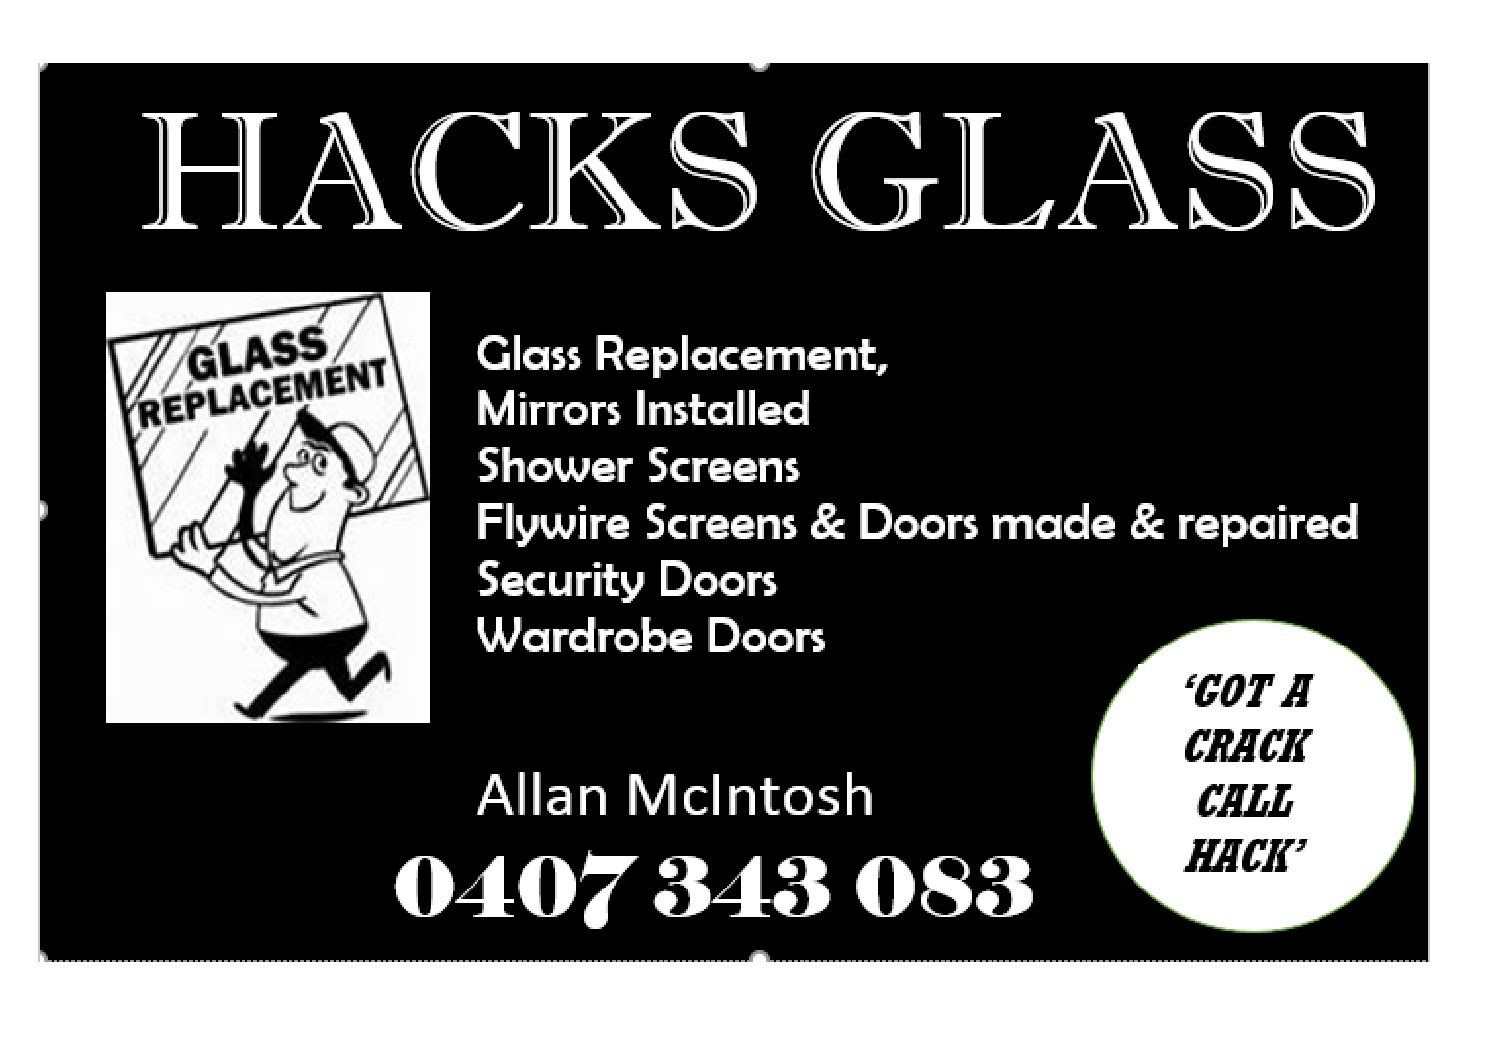 Hacks Glass